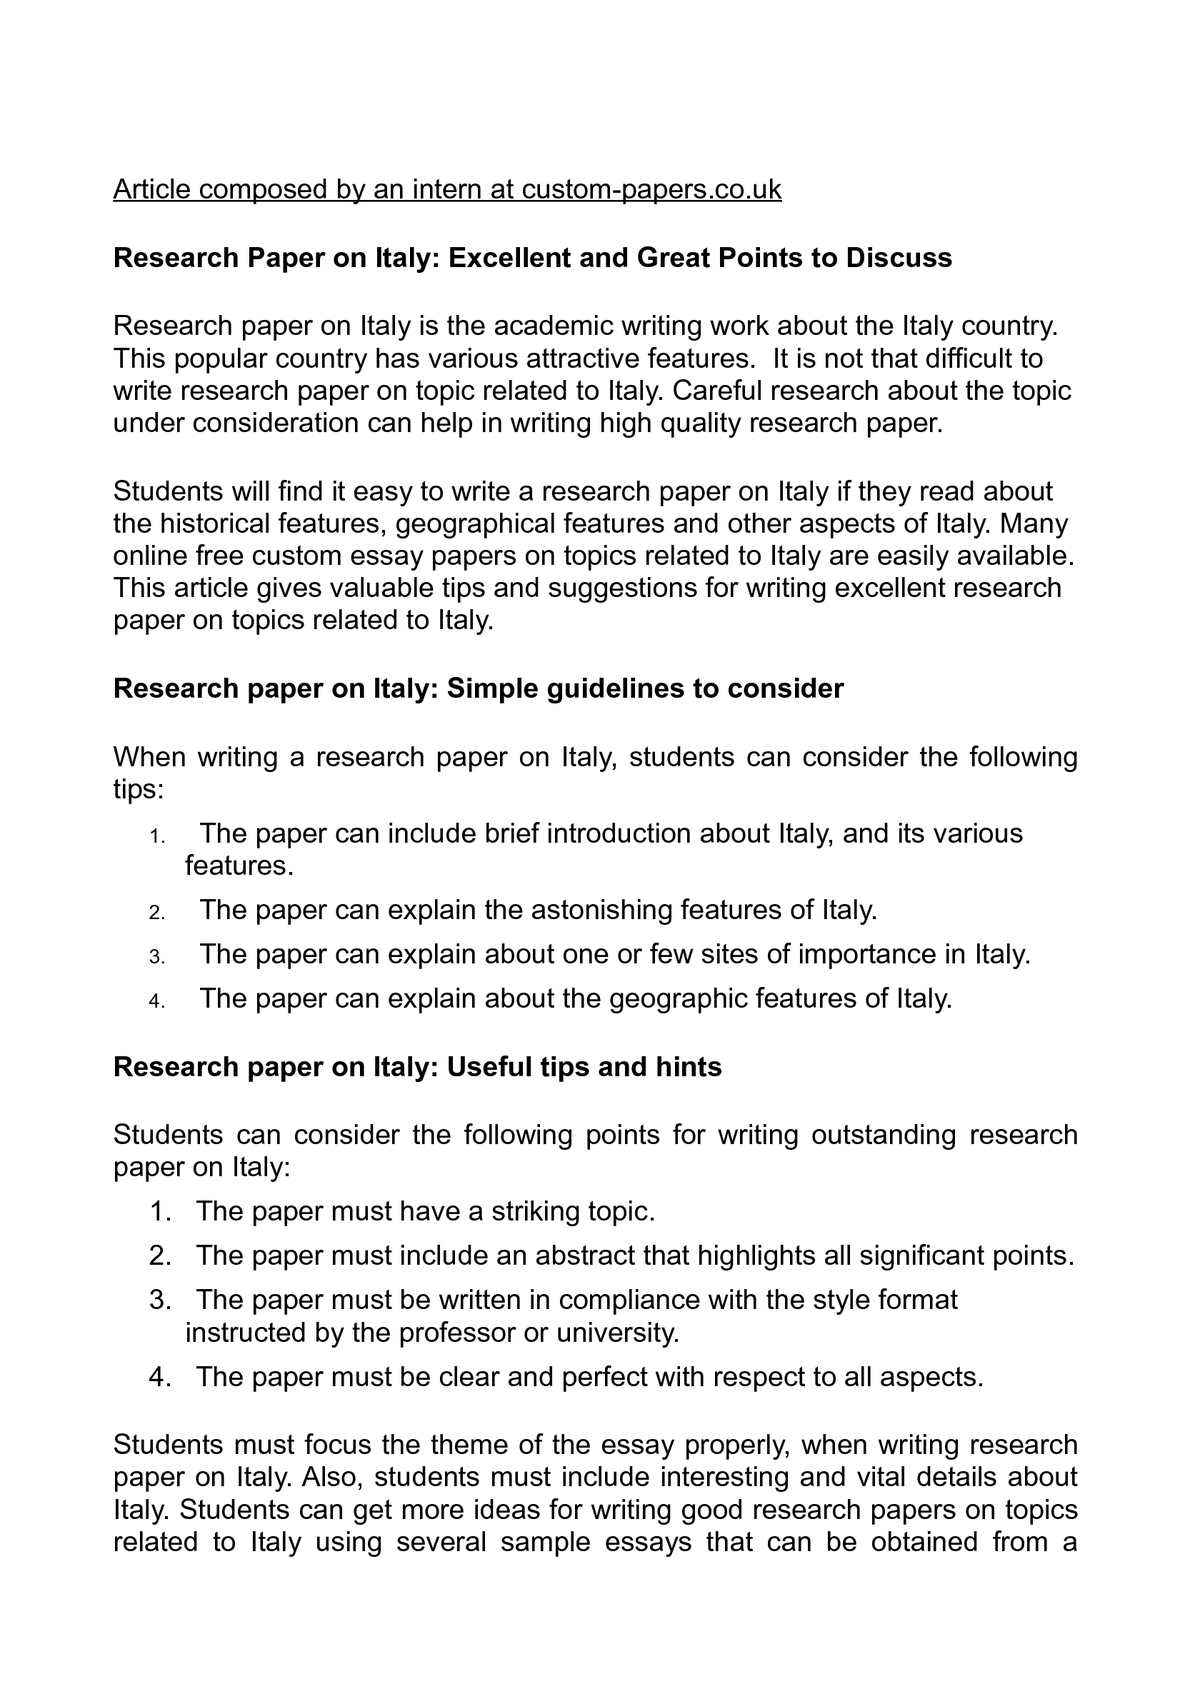 research paper how towards publish italian